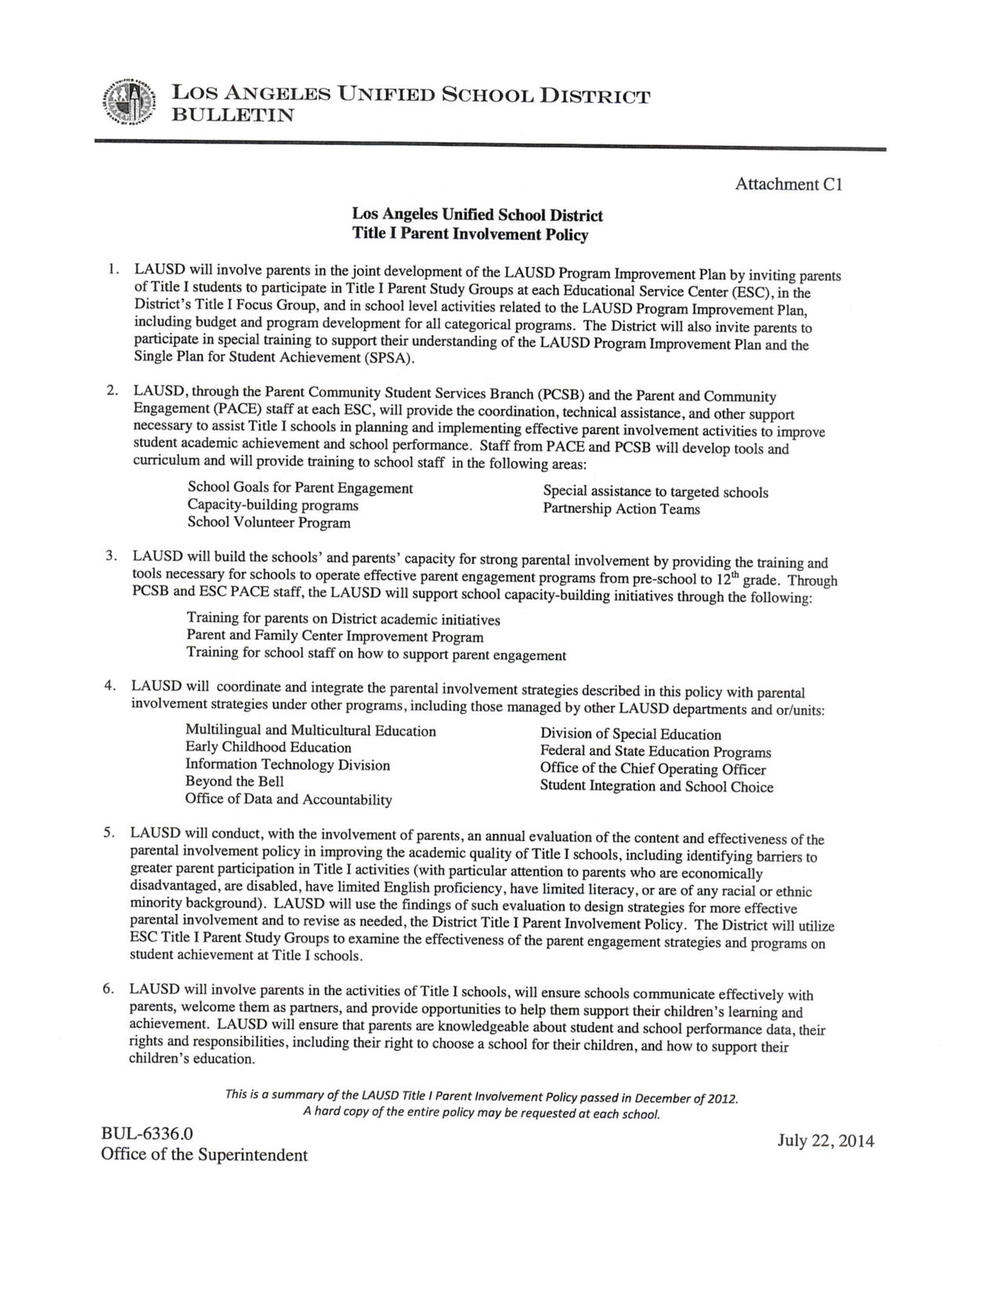 LAUSD Title I Parent Involvement Policy English JPEG.jpg